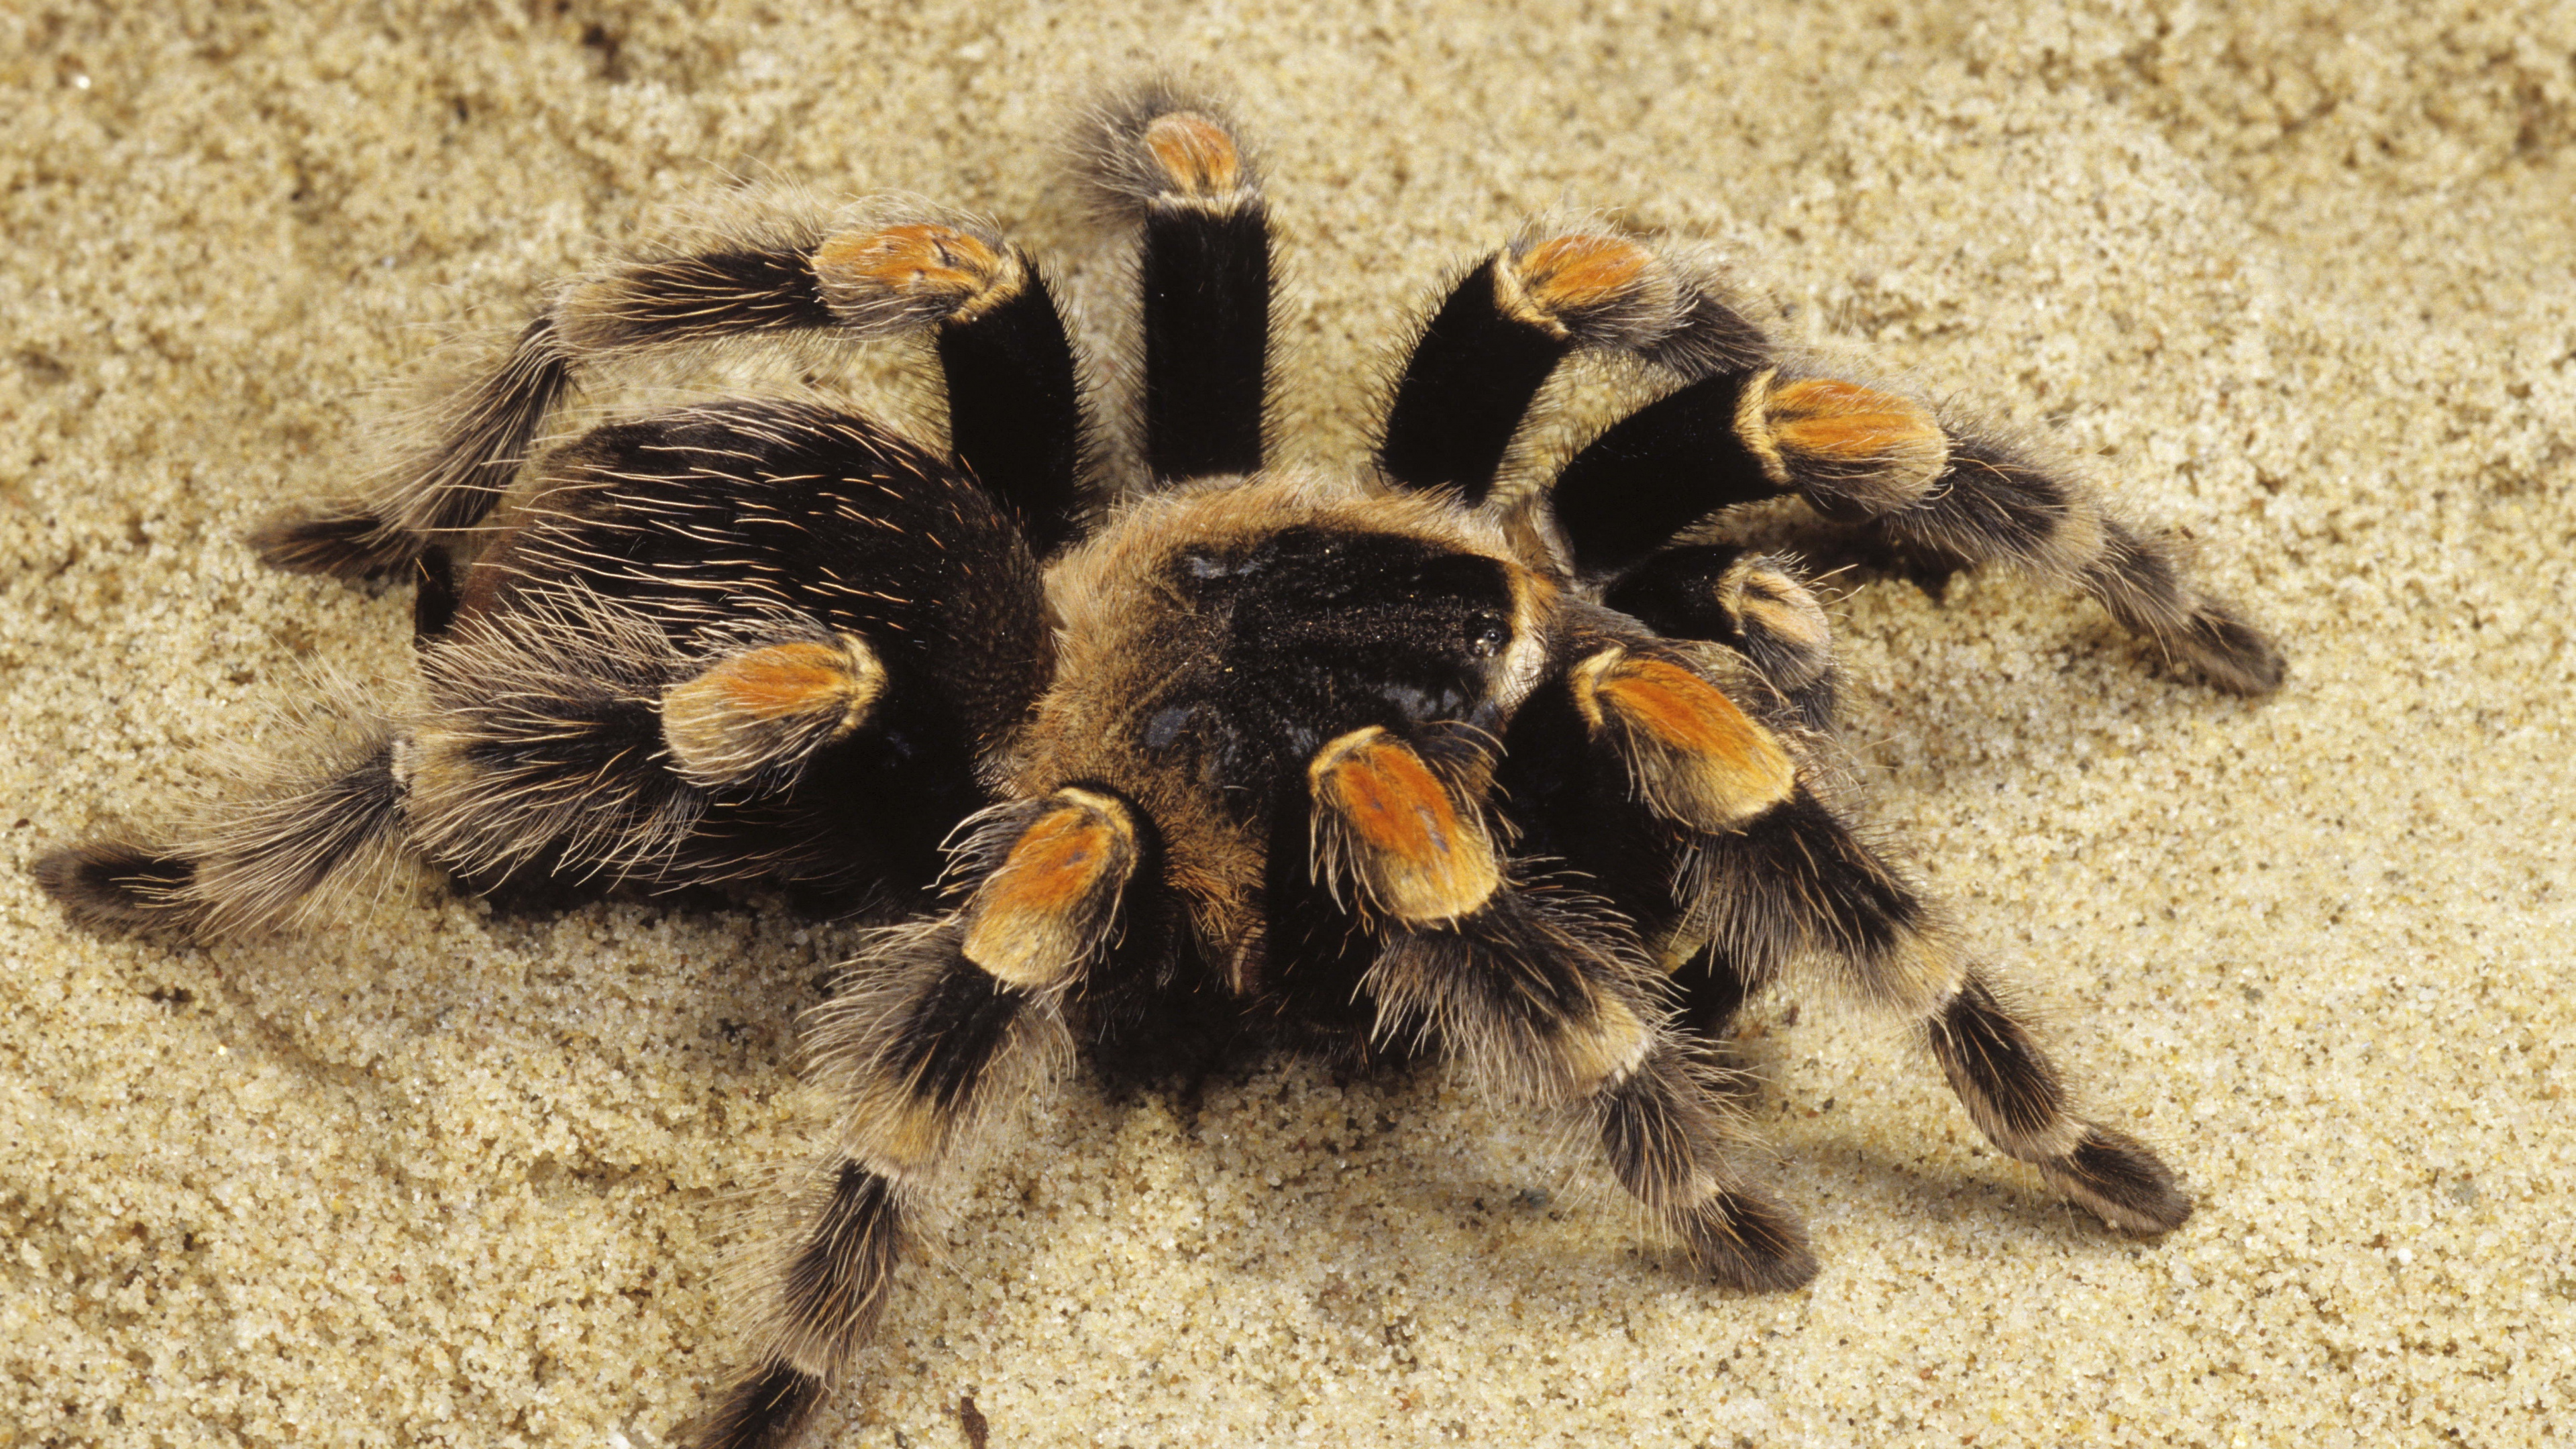 Black And Yellow Spider On The Sand Tarantula Wallpaper